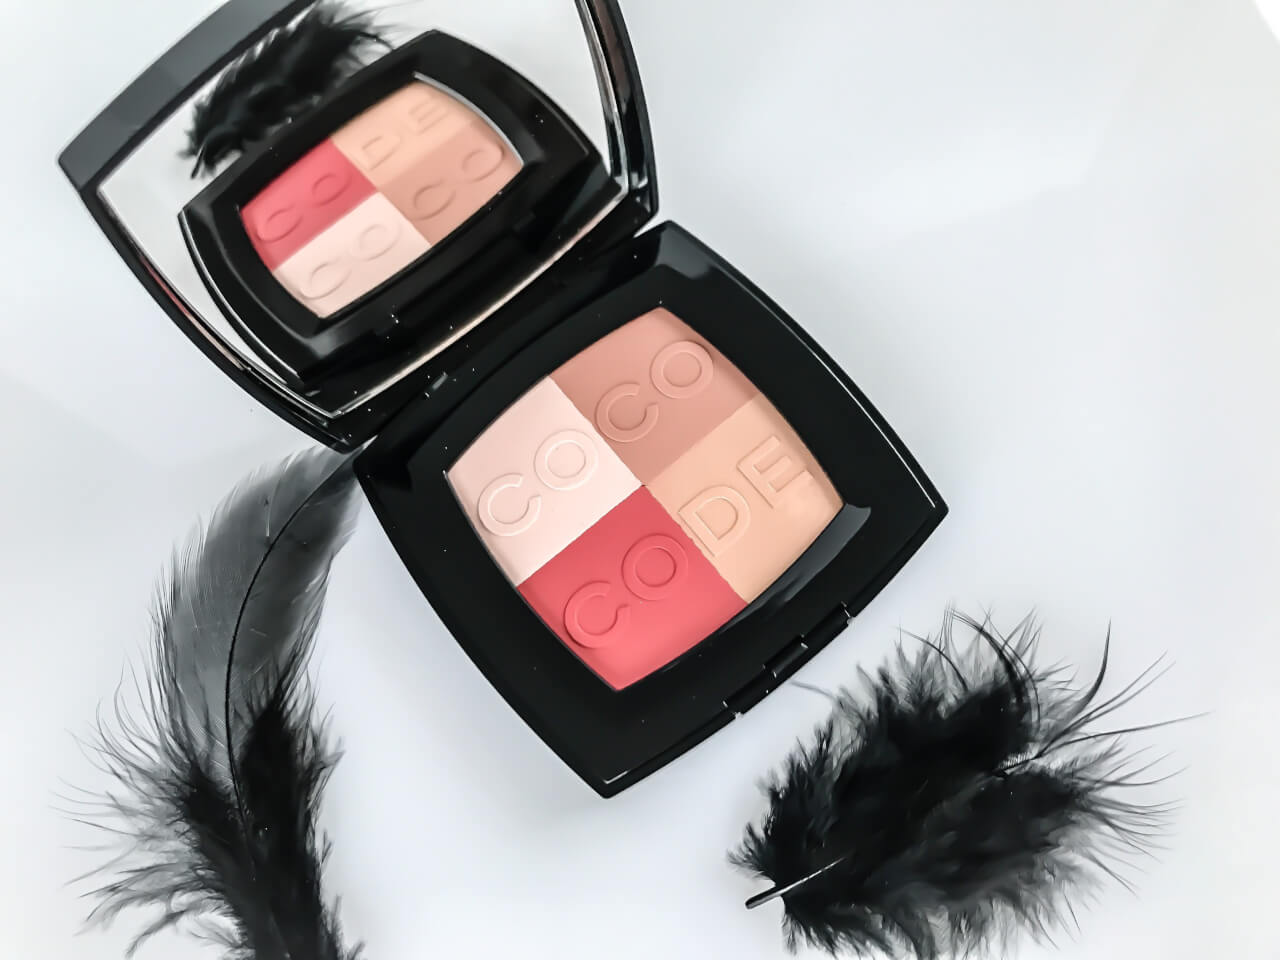 Chanel COCO CODES COLLECTION blush harmony